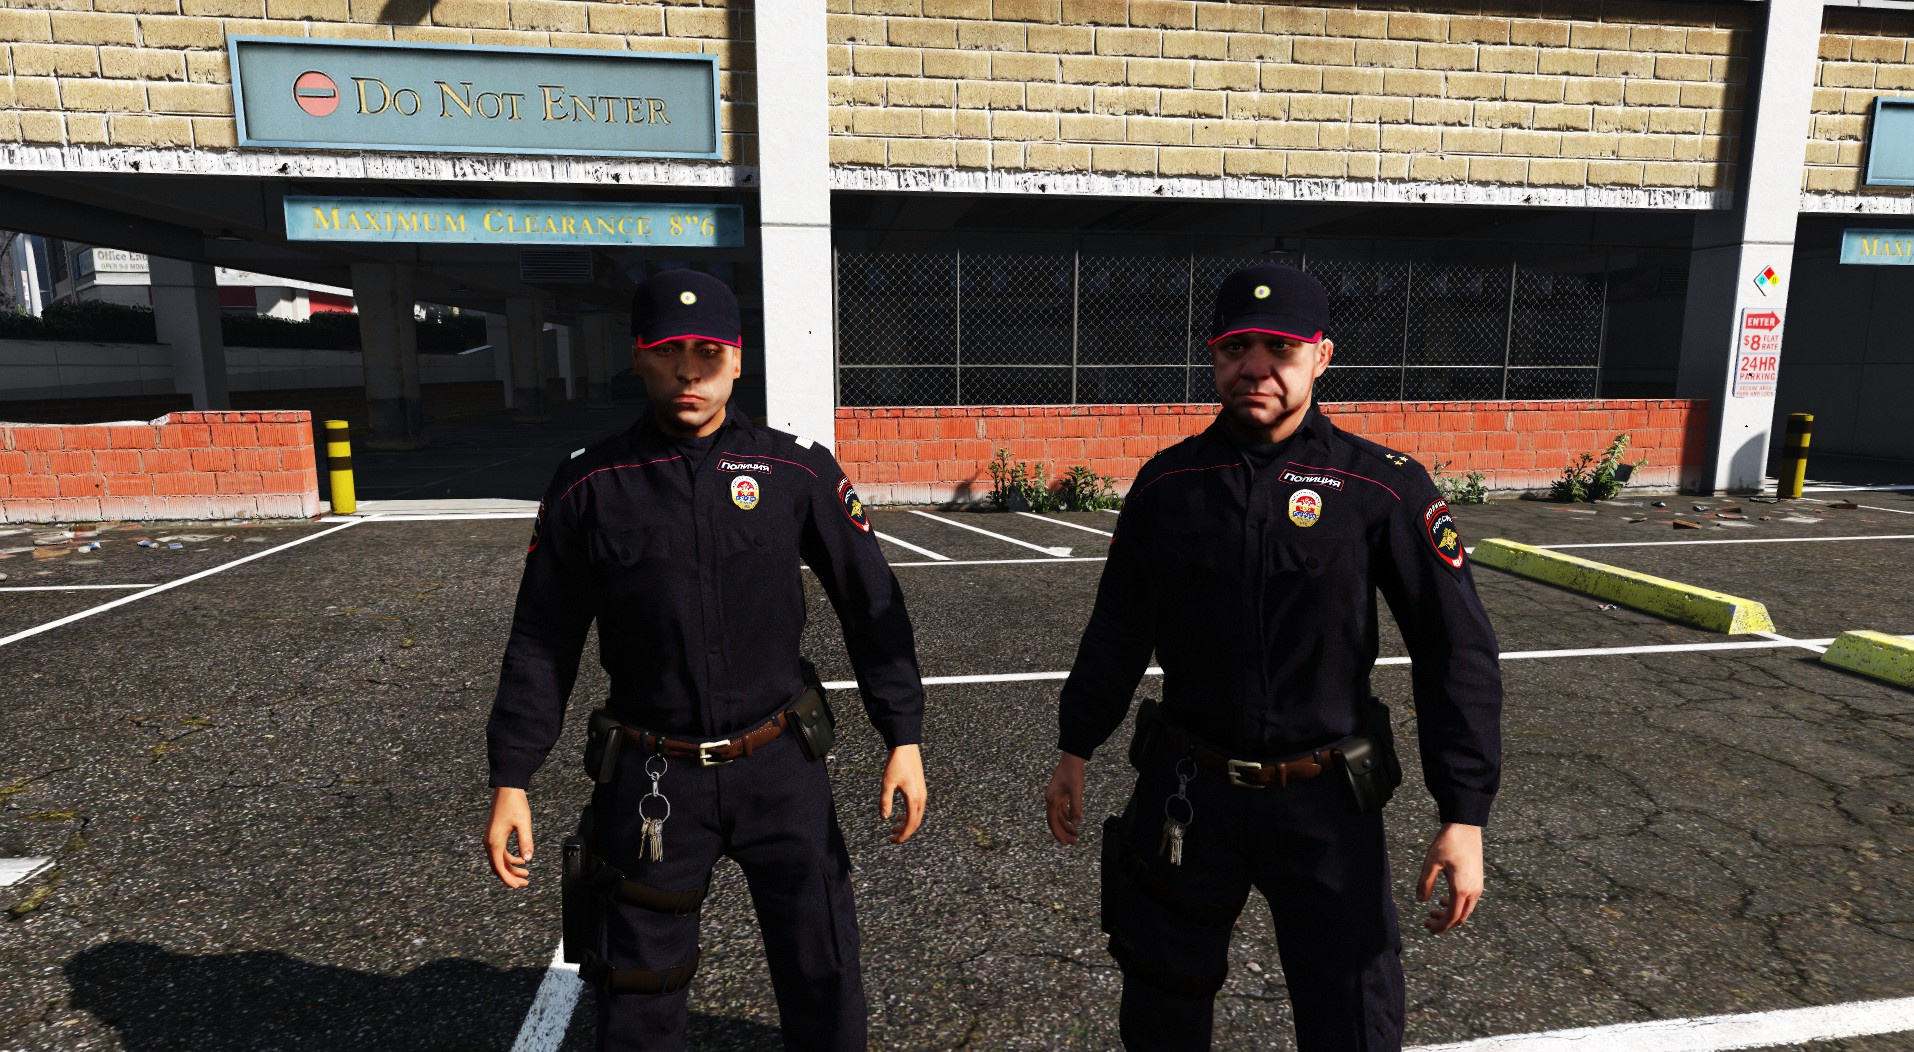 Russian police uniform gta5 for The russian mod